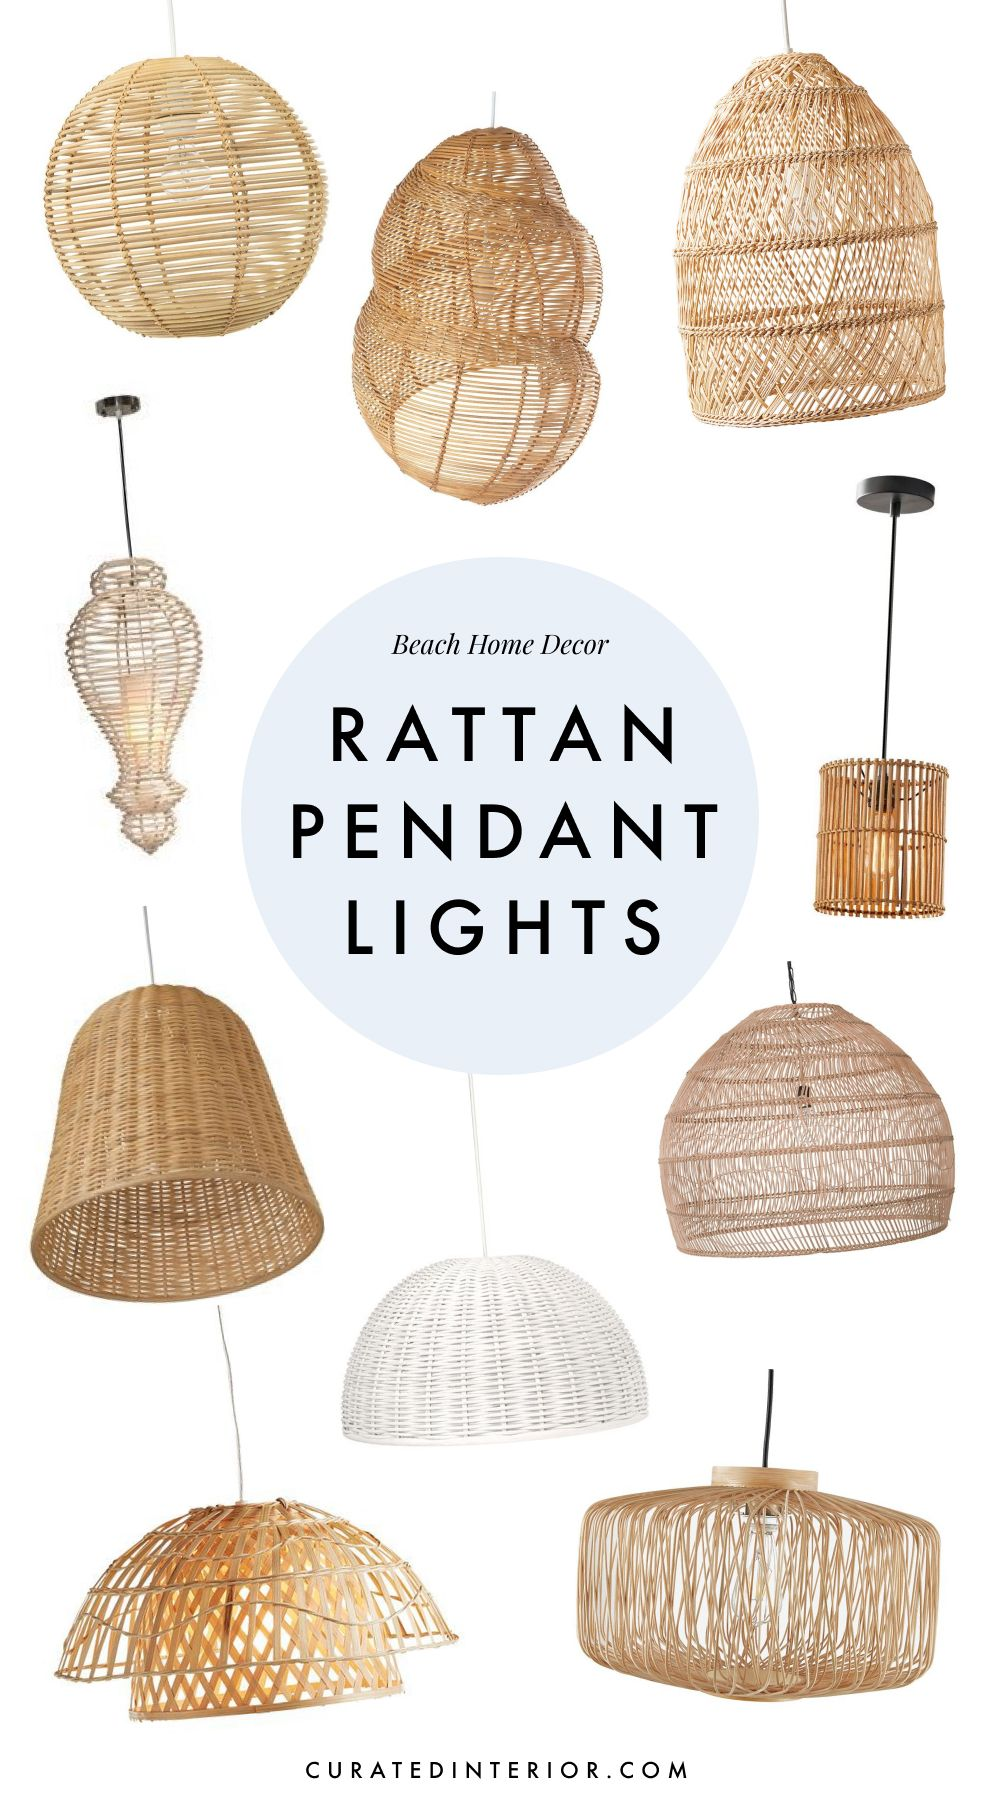 Beautiful Rattan Pendant Lights for a Beach Home